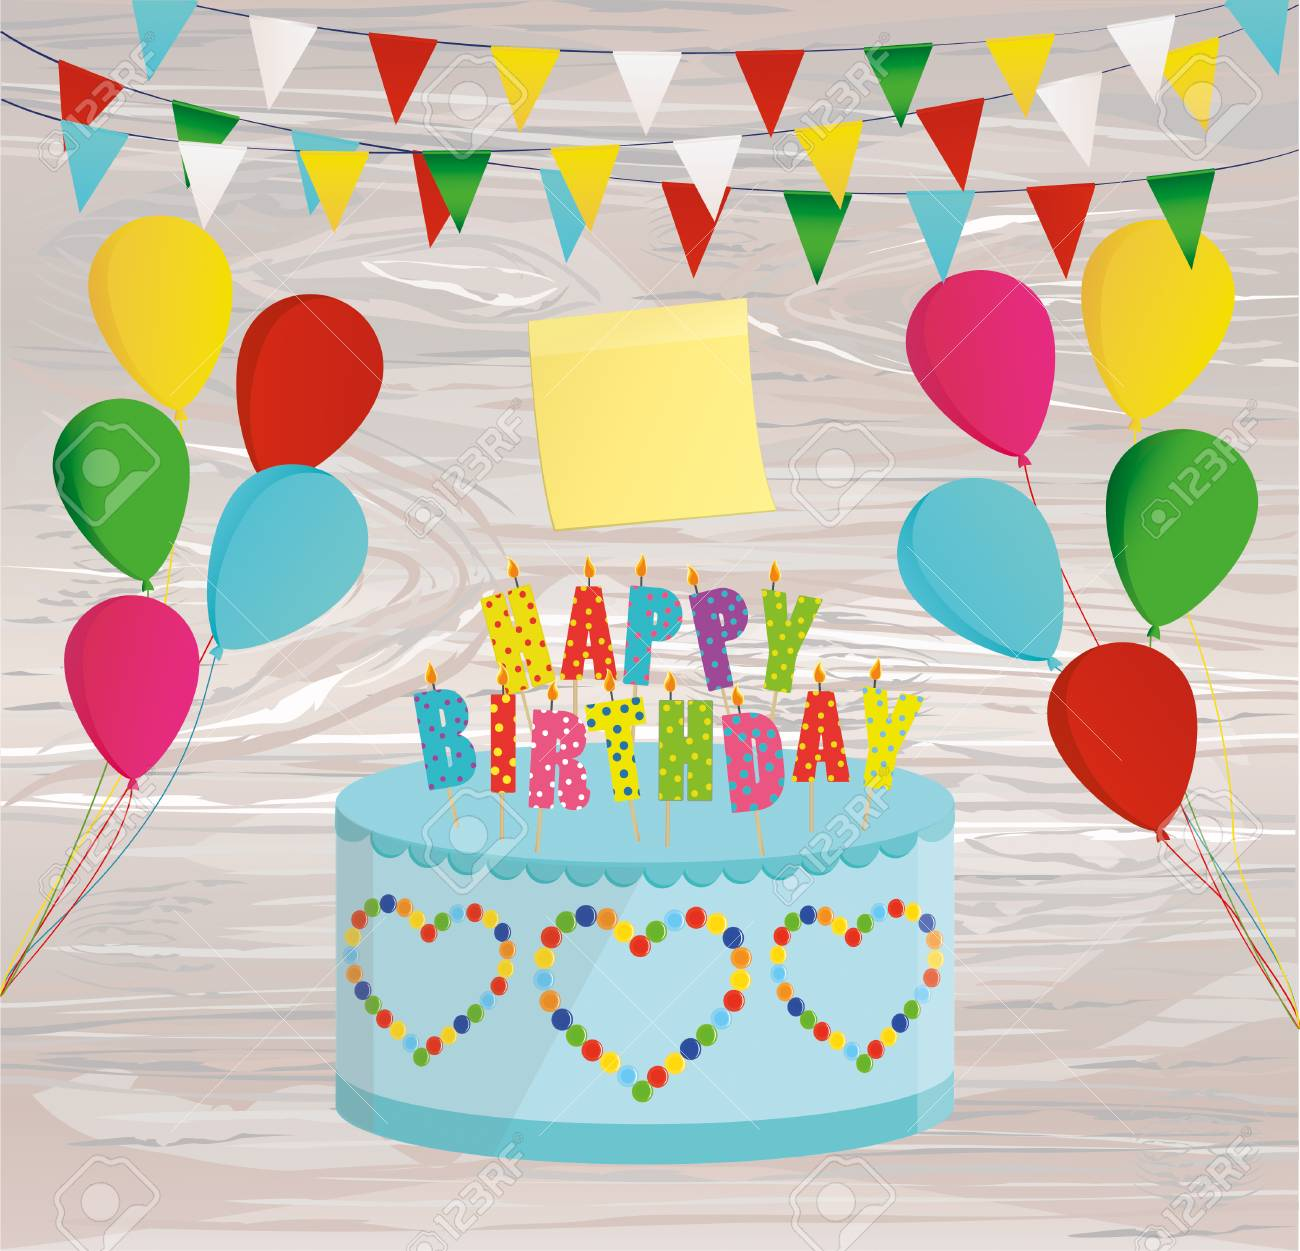 Festive Colorful Rainbow And A Big Cake With Candles Happy Birthday Empty Yellow Sheet